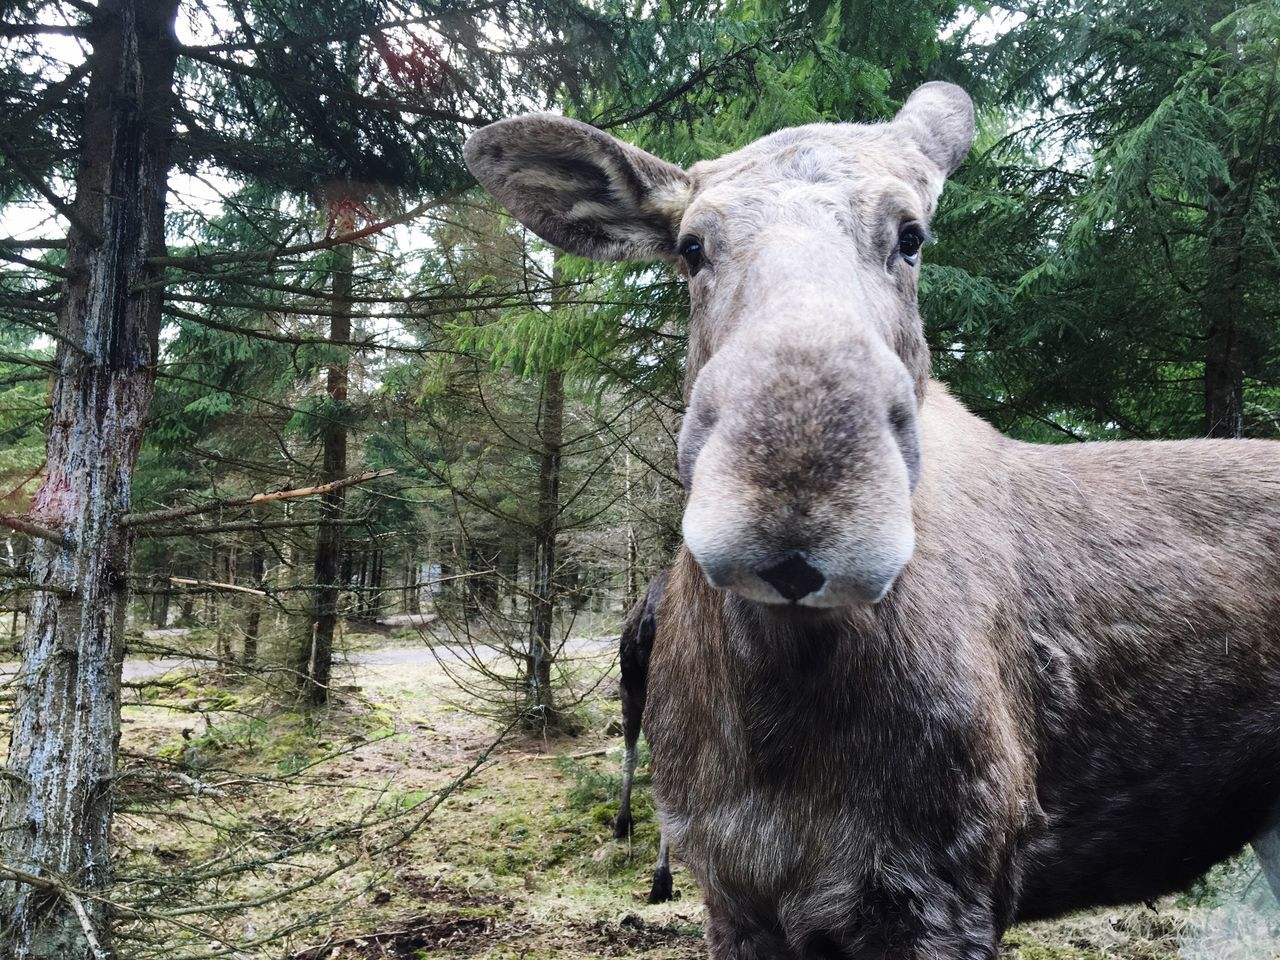 Moose by trees in forest